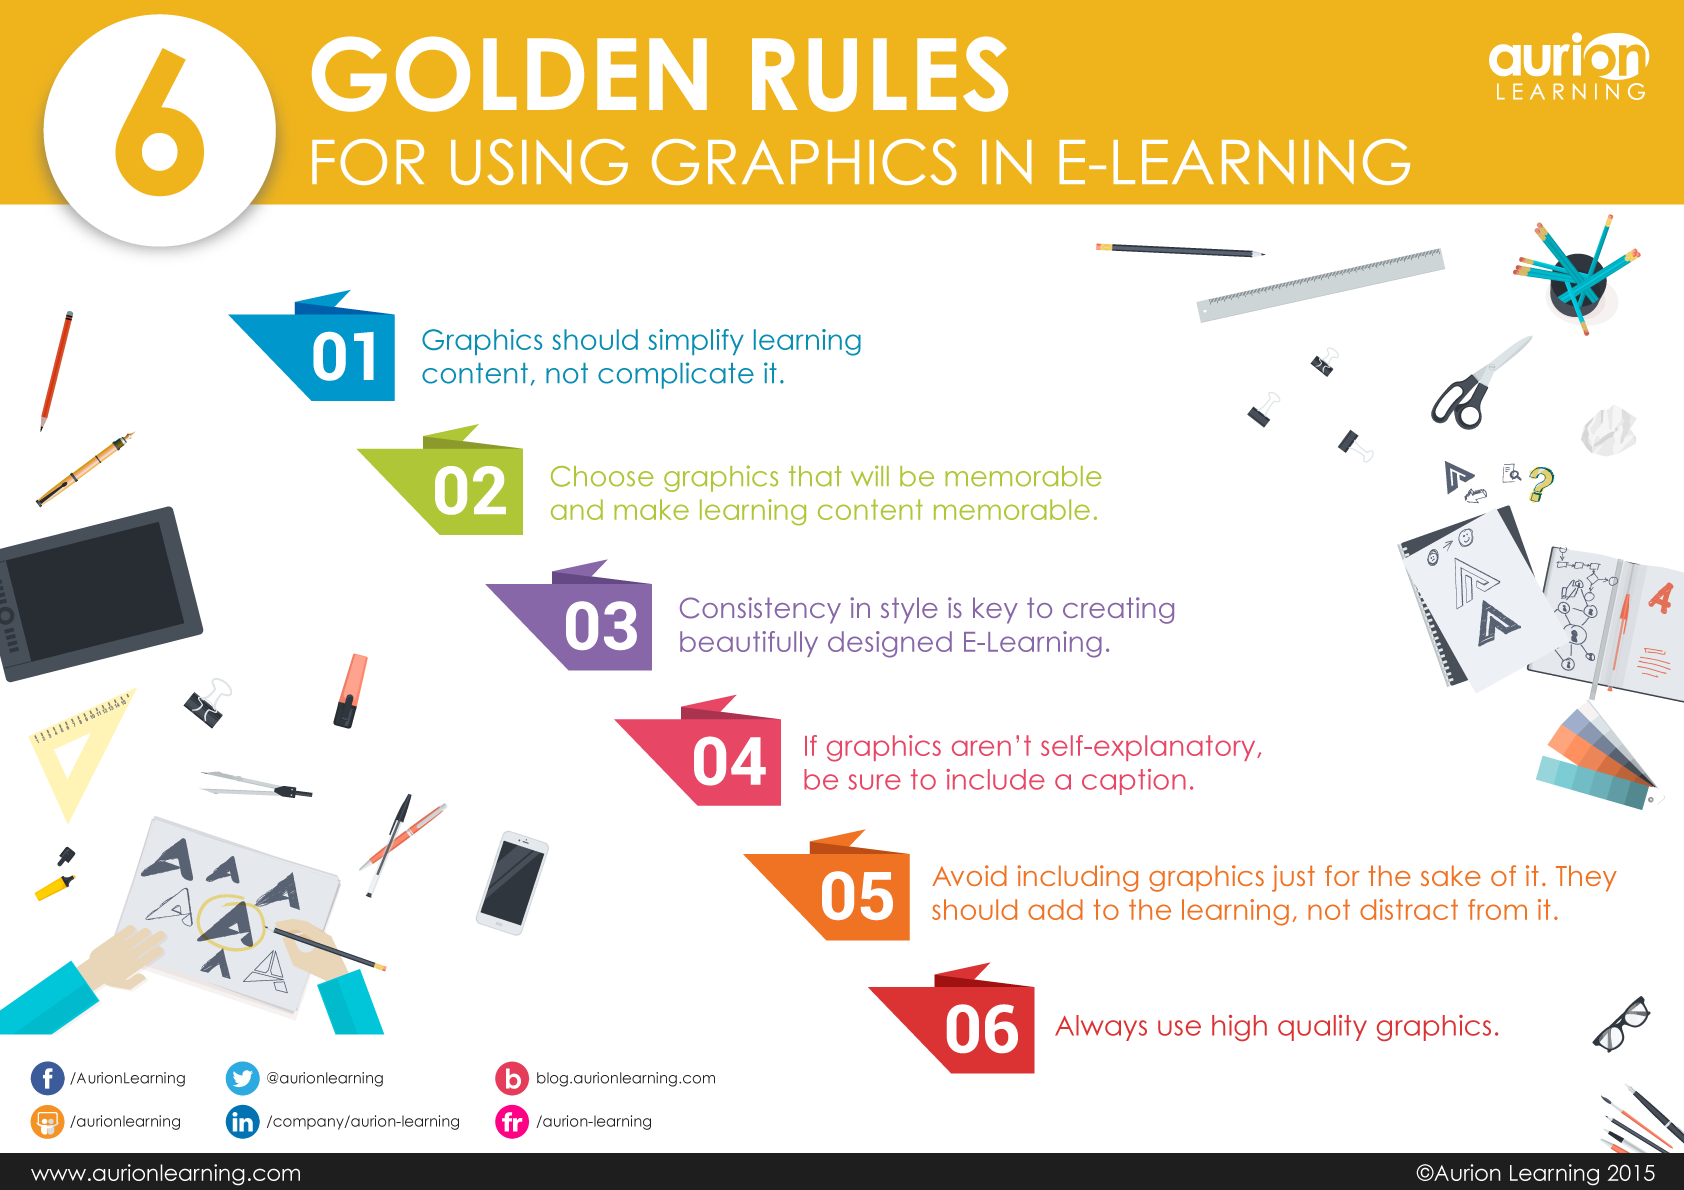 17 Best images about e-learning on Pinterest | Technology, Adobe ...